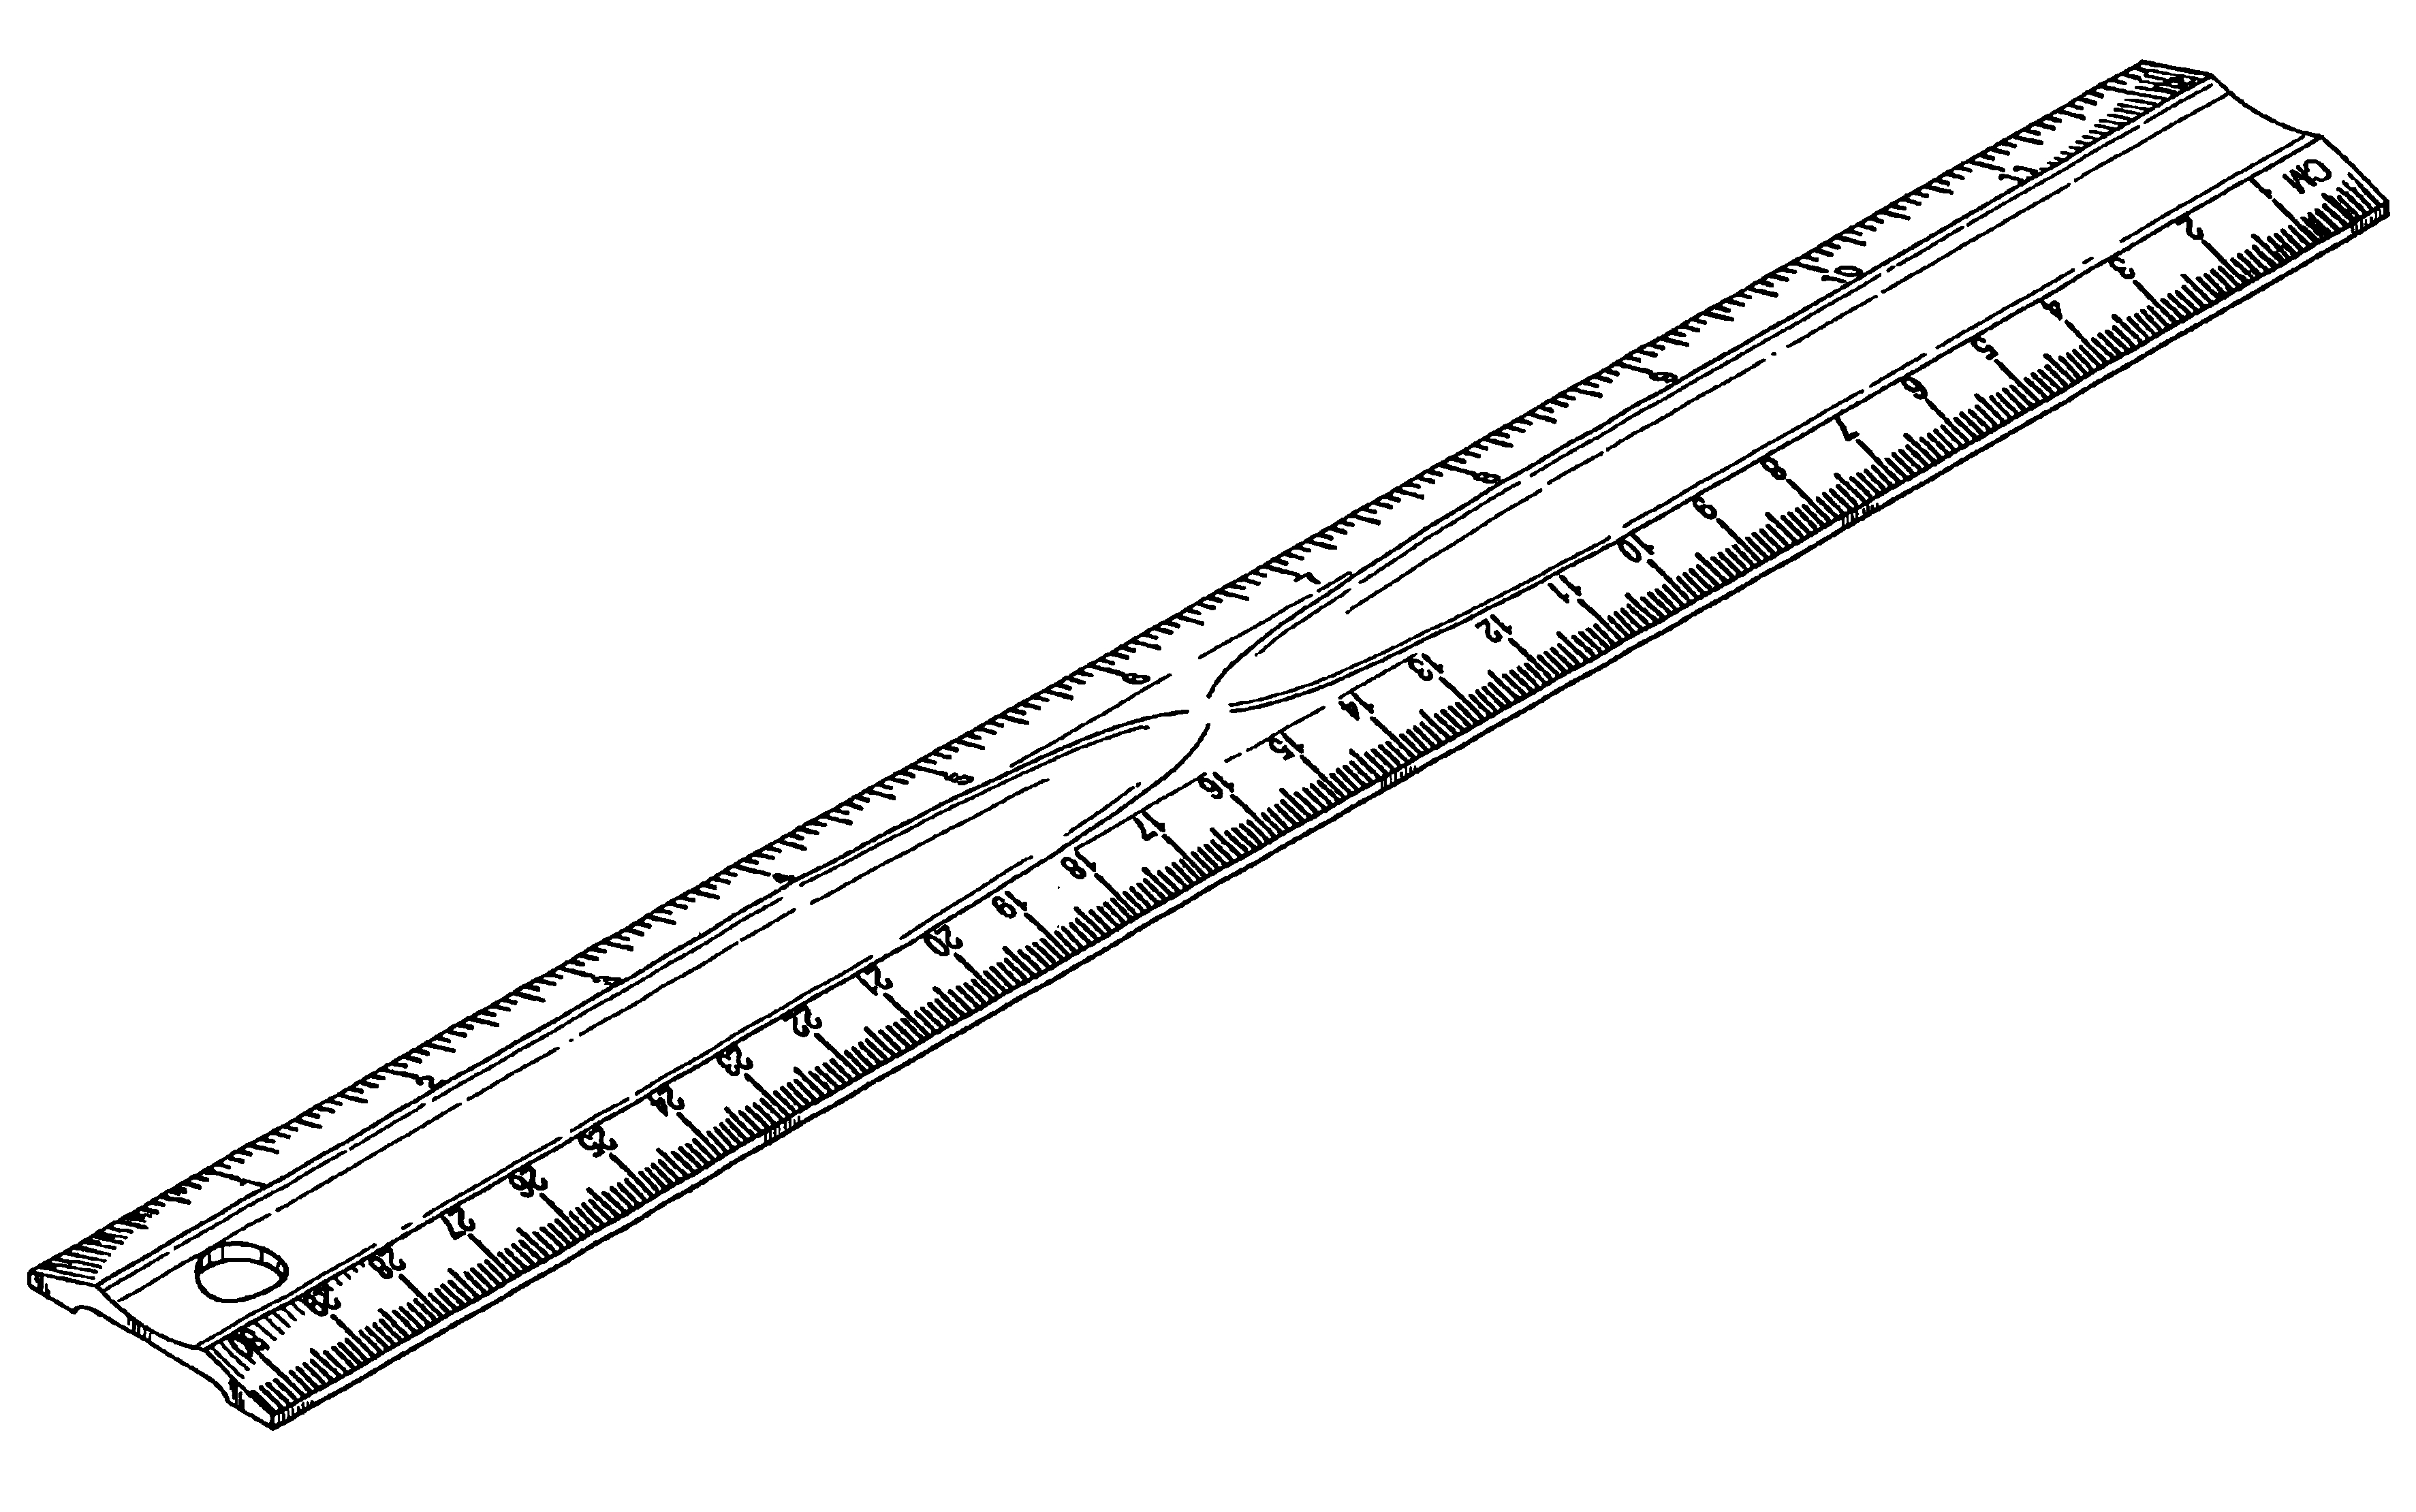 Black and white clipart ruler image black and white library Free Ruler Cliparts, Download Free Clip Art, Free Clip Art on ... image black and white library